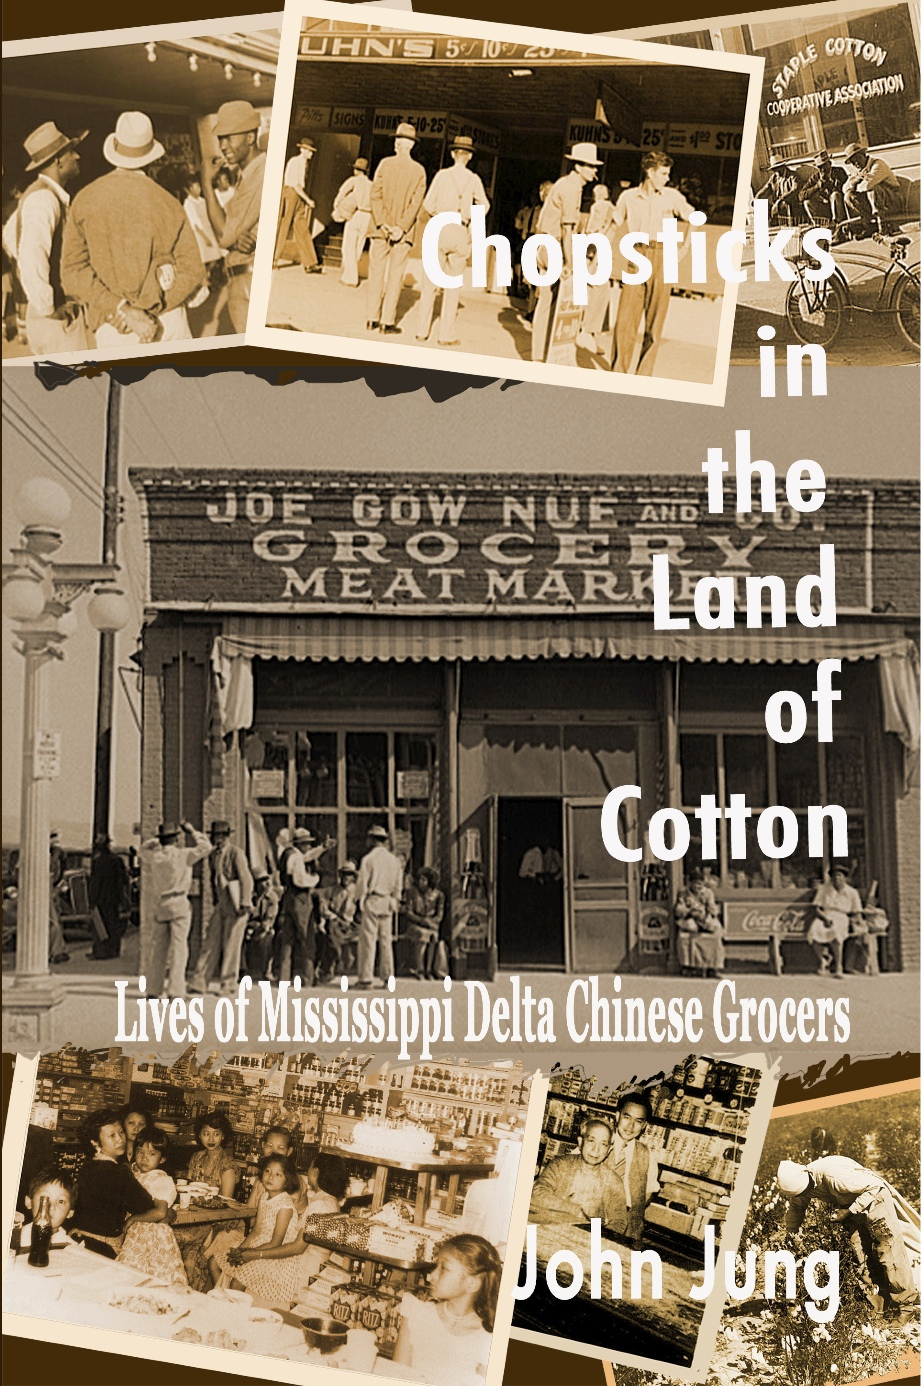 Chopsticks in the Land of Cotton: Lives of Mississipi Delta Chinese Grocers